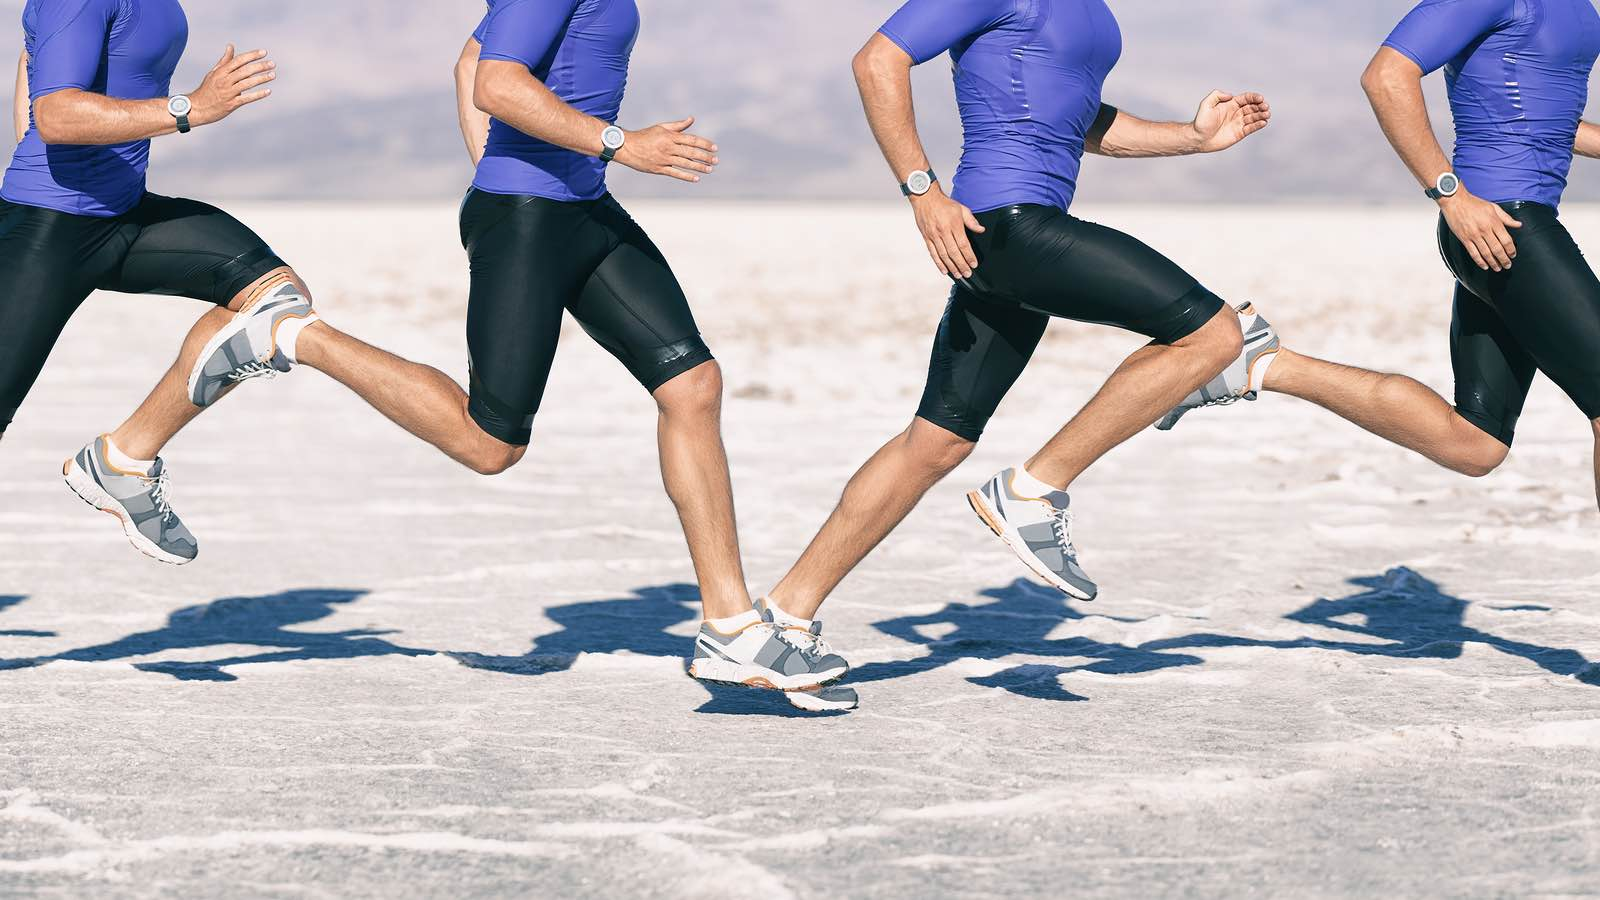 Common Biomechanical Errors in Runners : Recognize the most common running patterns seen in athletes that can lead to injury